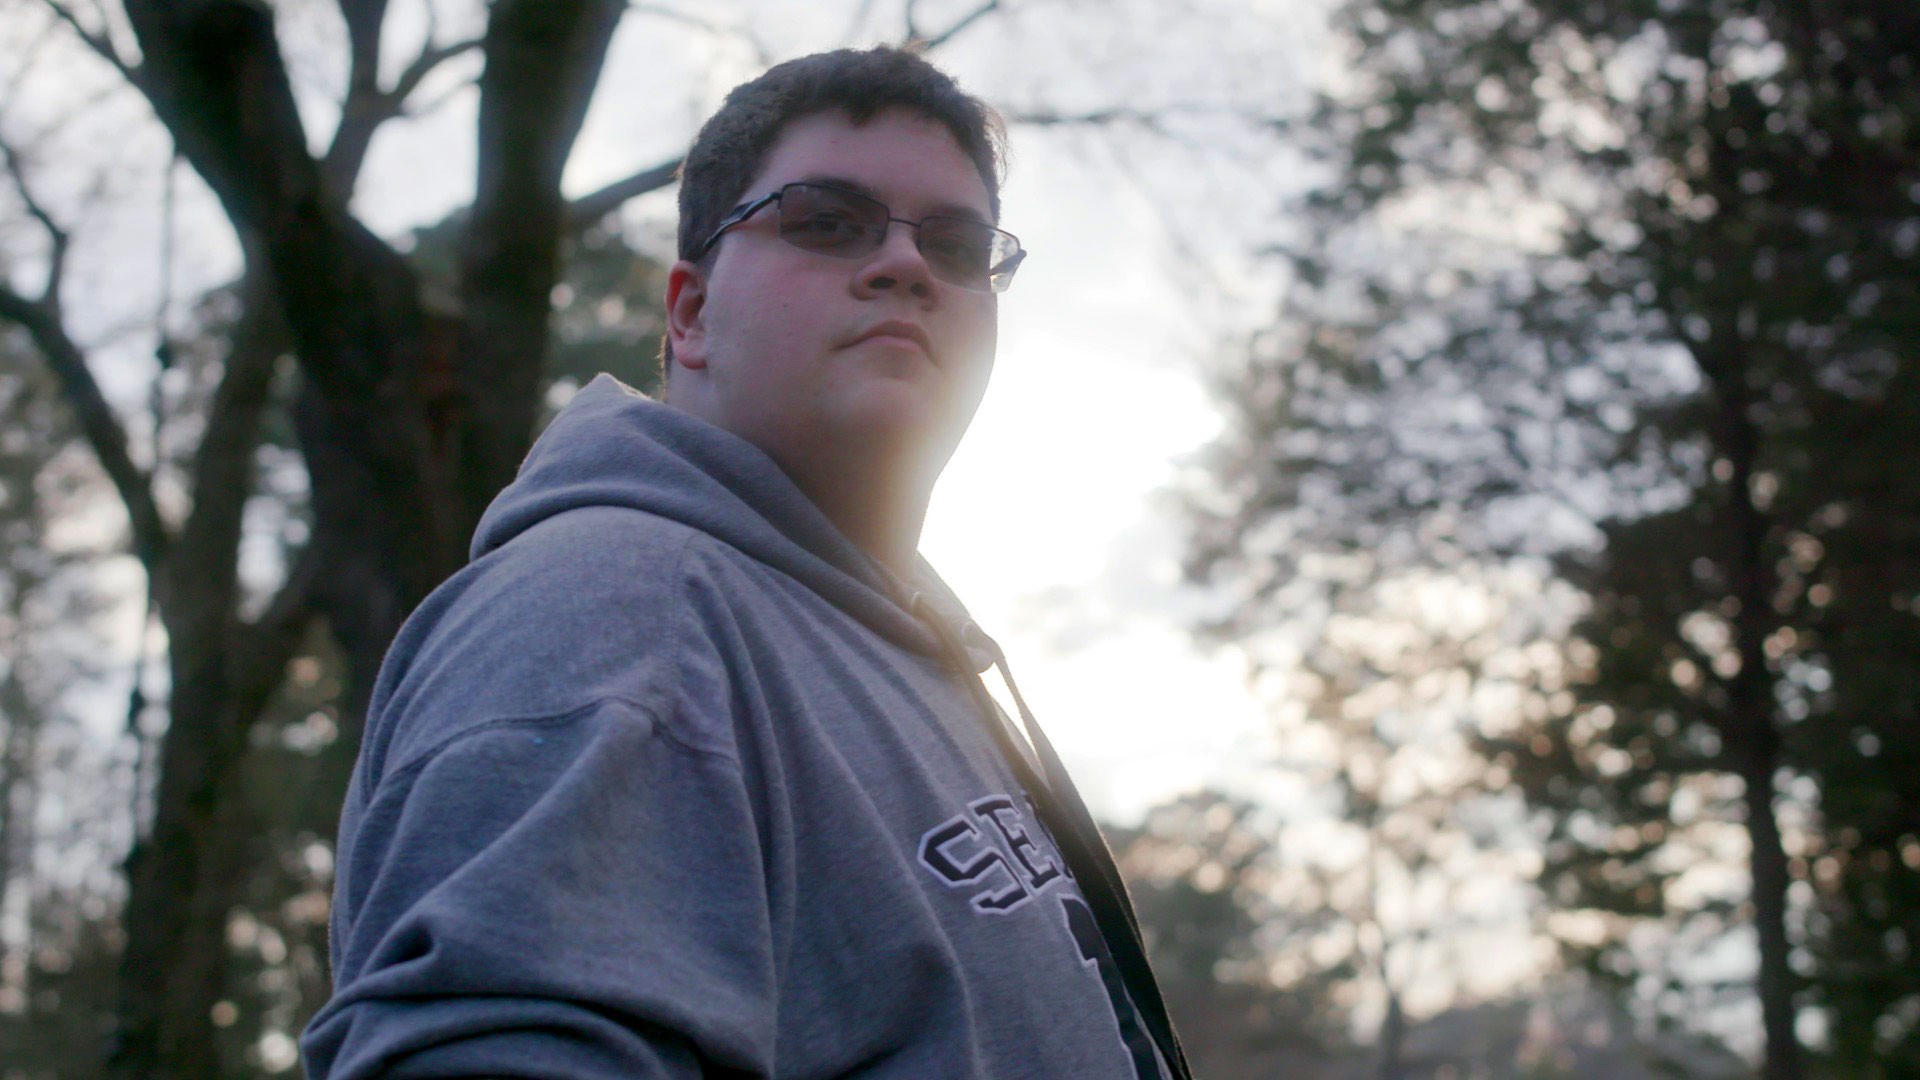 Gavin Grimm: The Student at the Heart of the Trans Civil Rights Movement